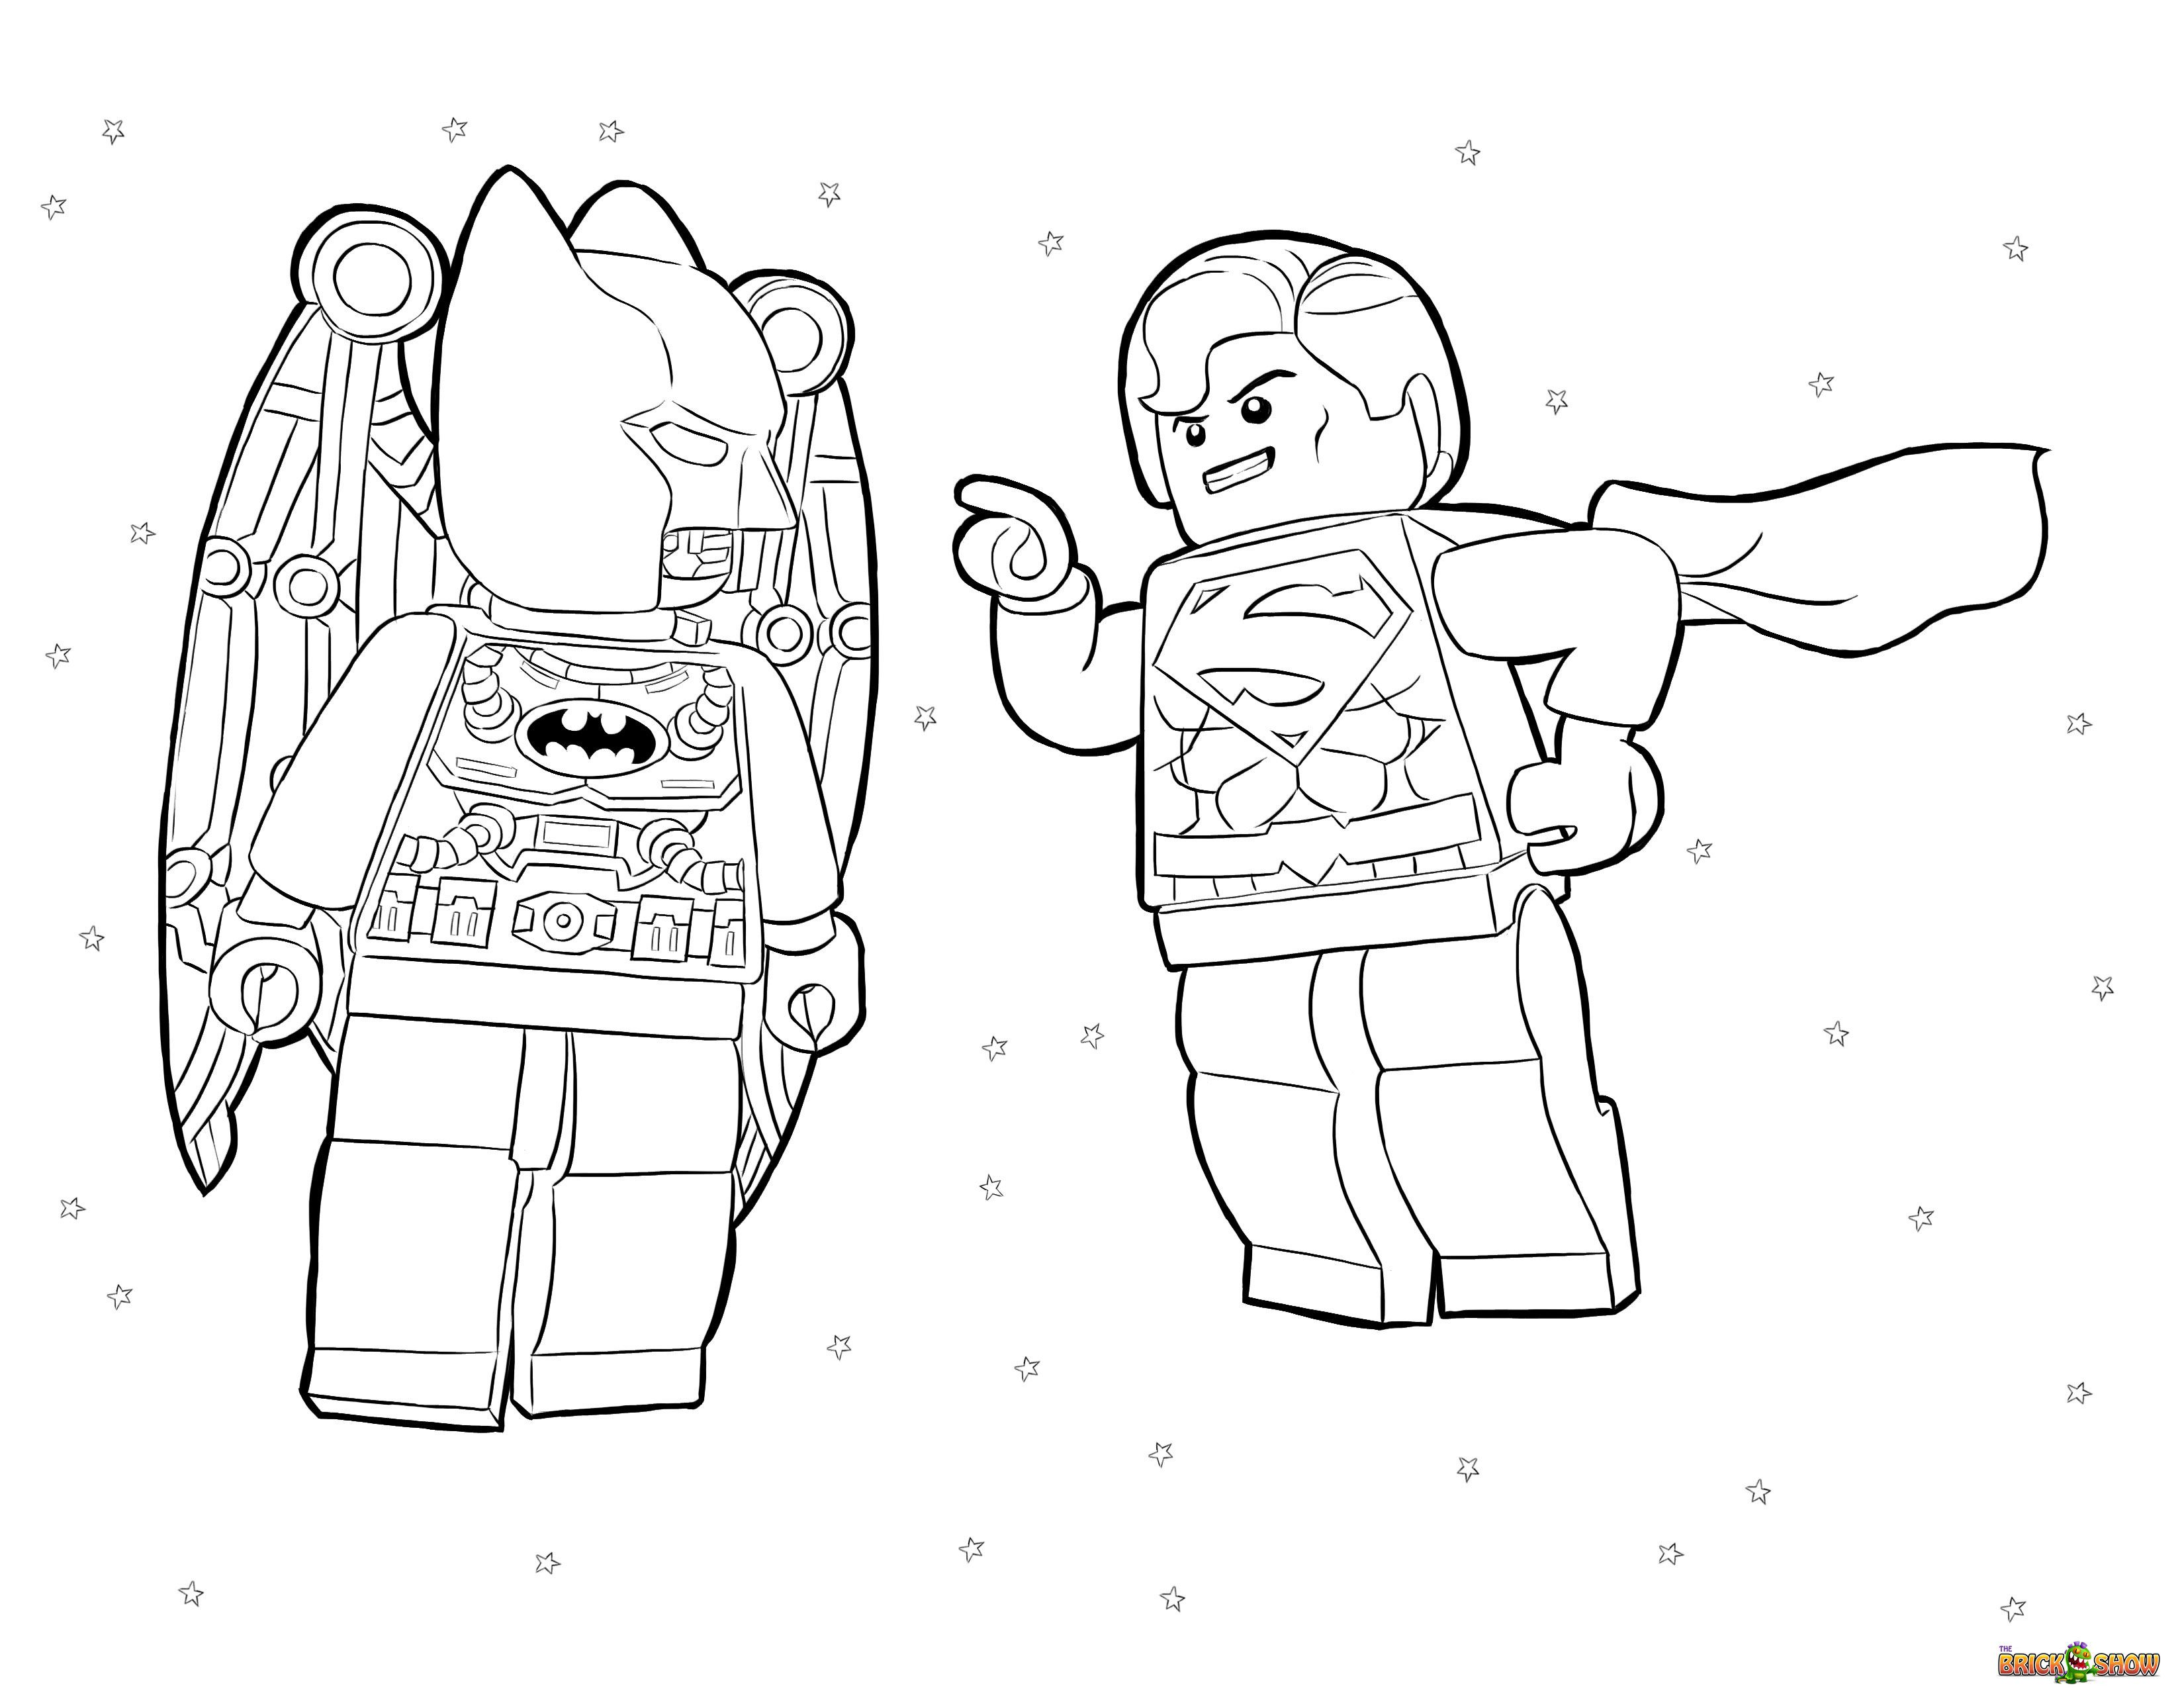 Free coloring pages for avengers - Avengers Online Coloring Games Lego Dc Universe Super Heroes Coloring Pages Free Printable Lego